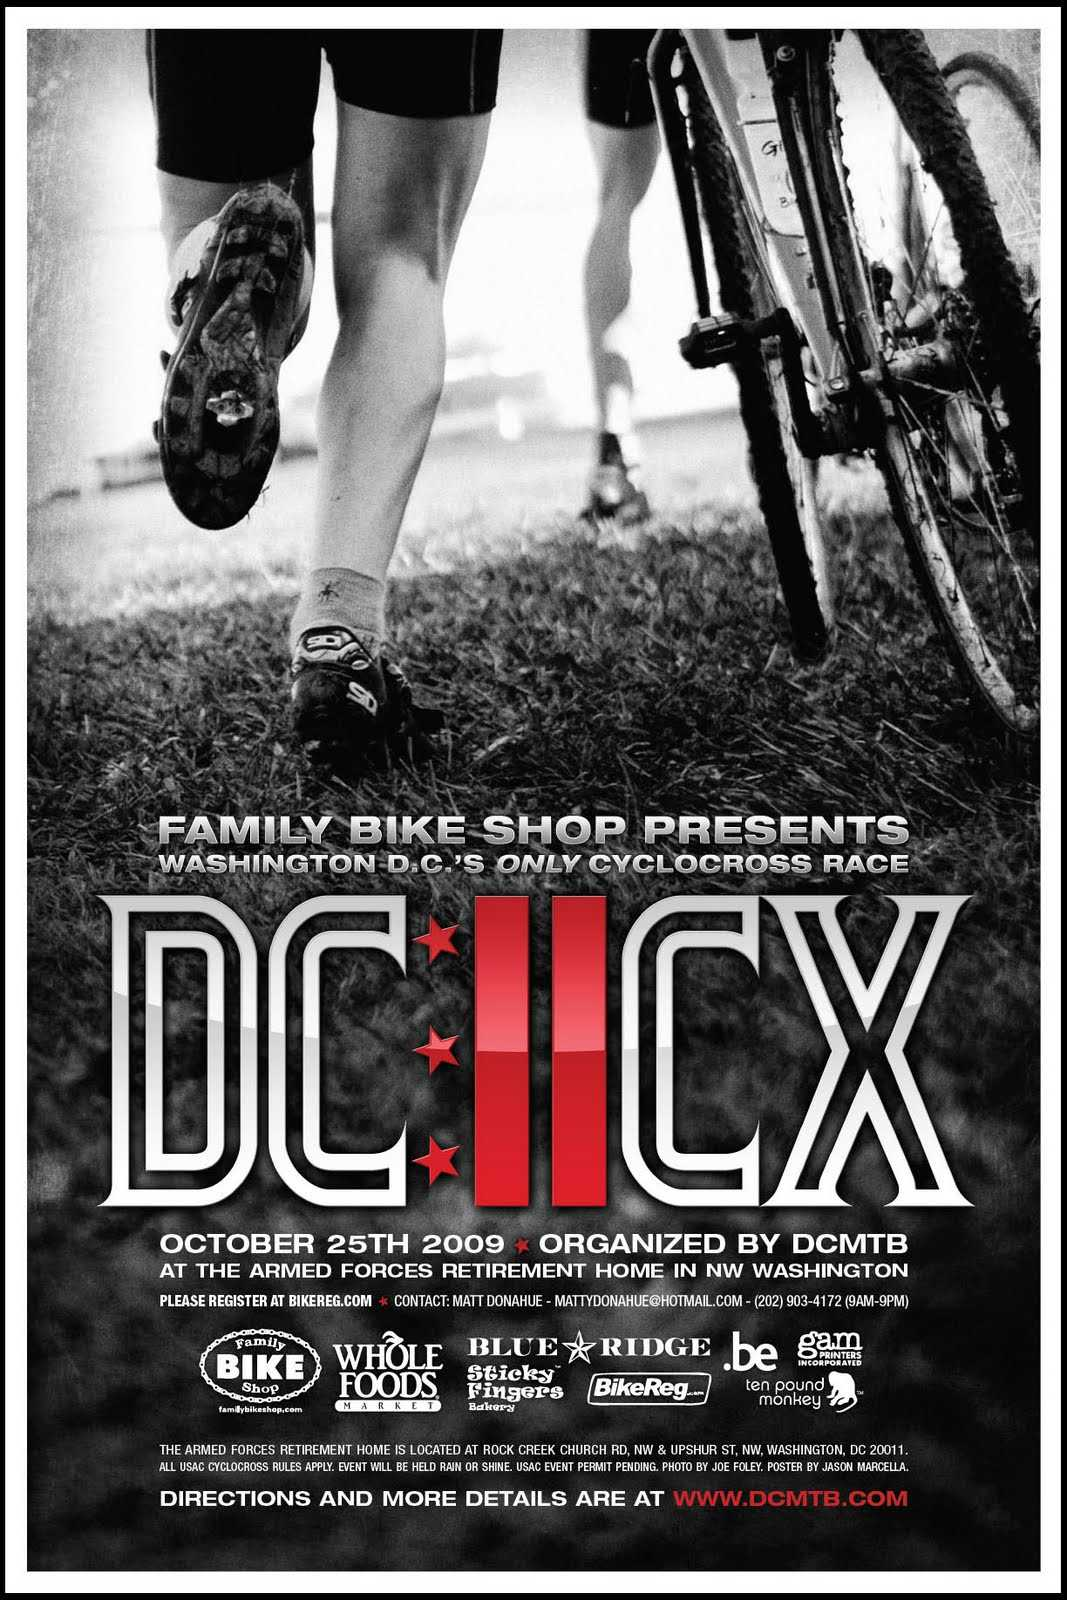 [DCCX+Poster]